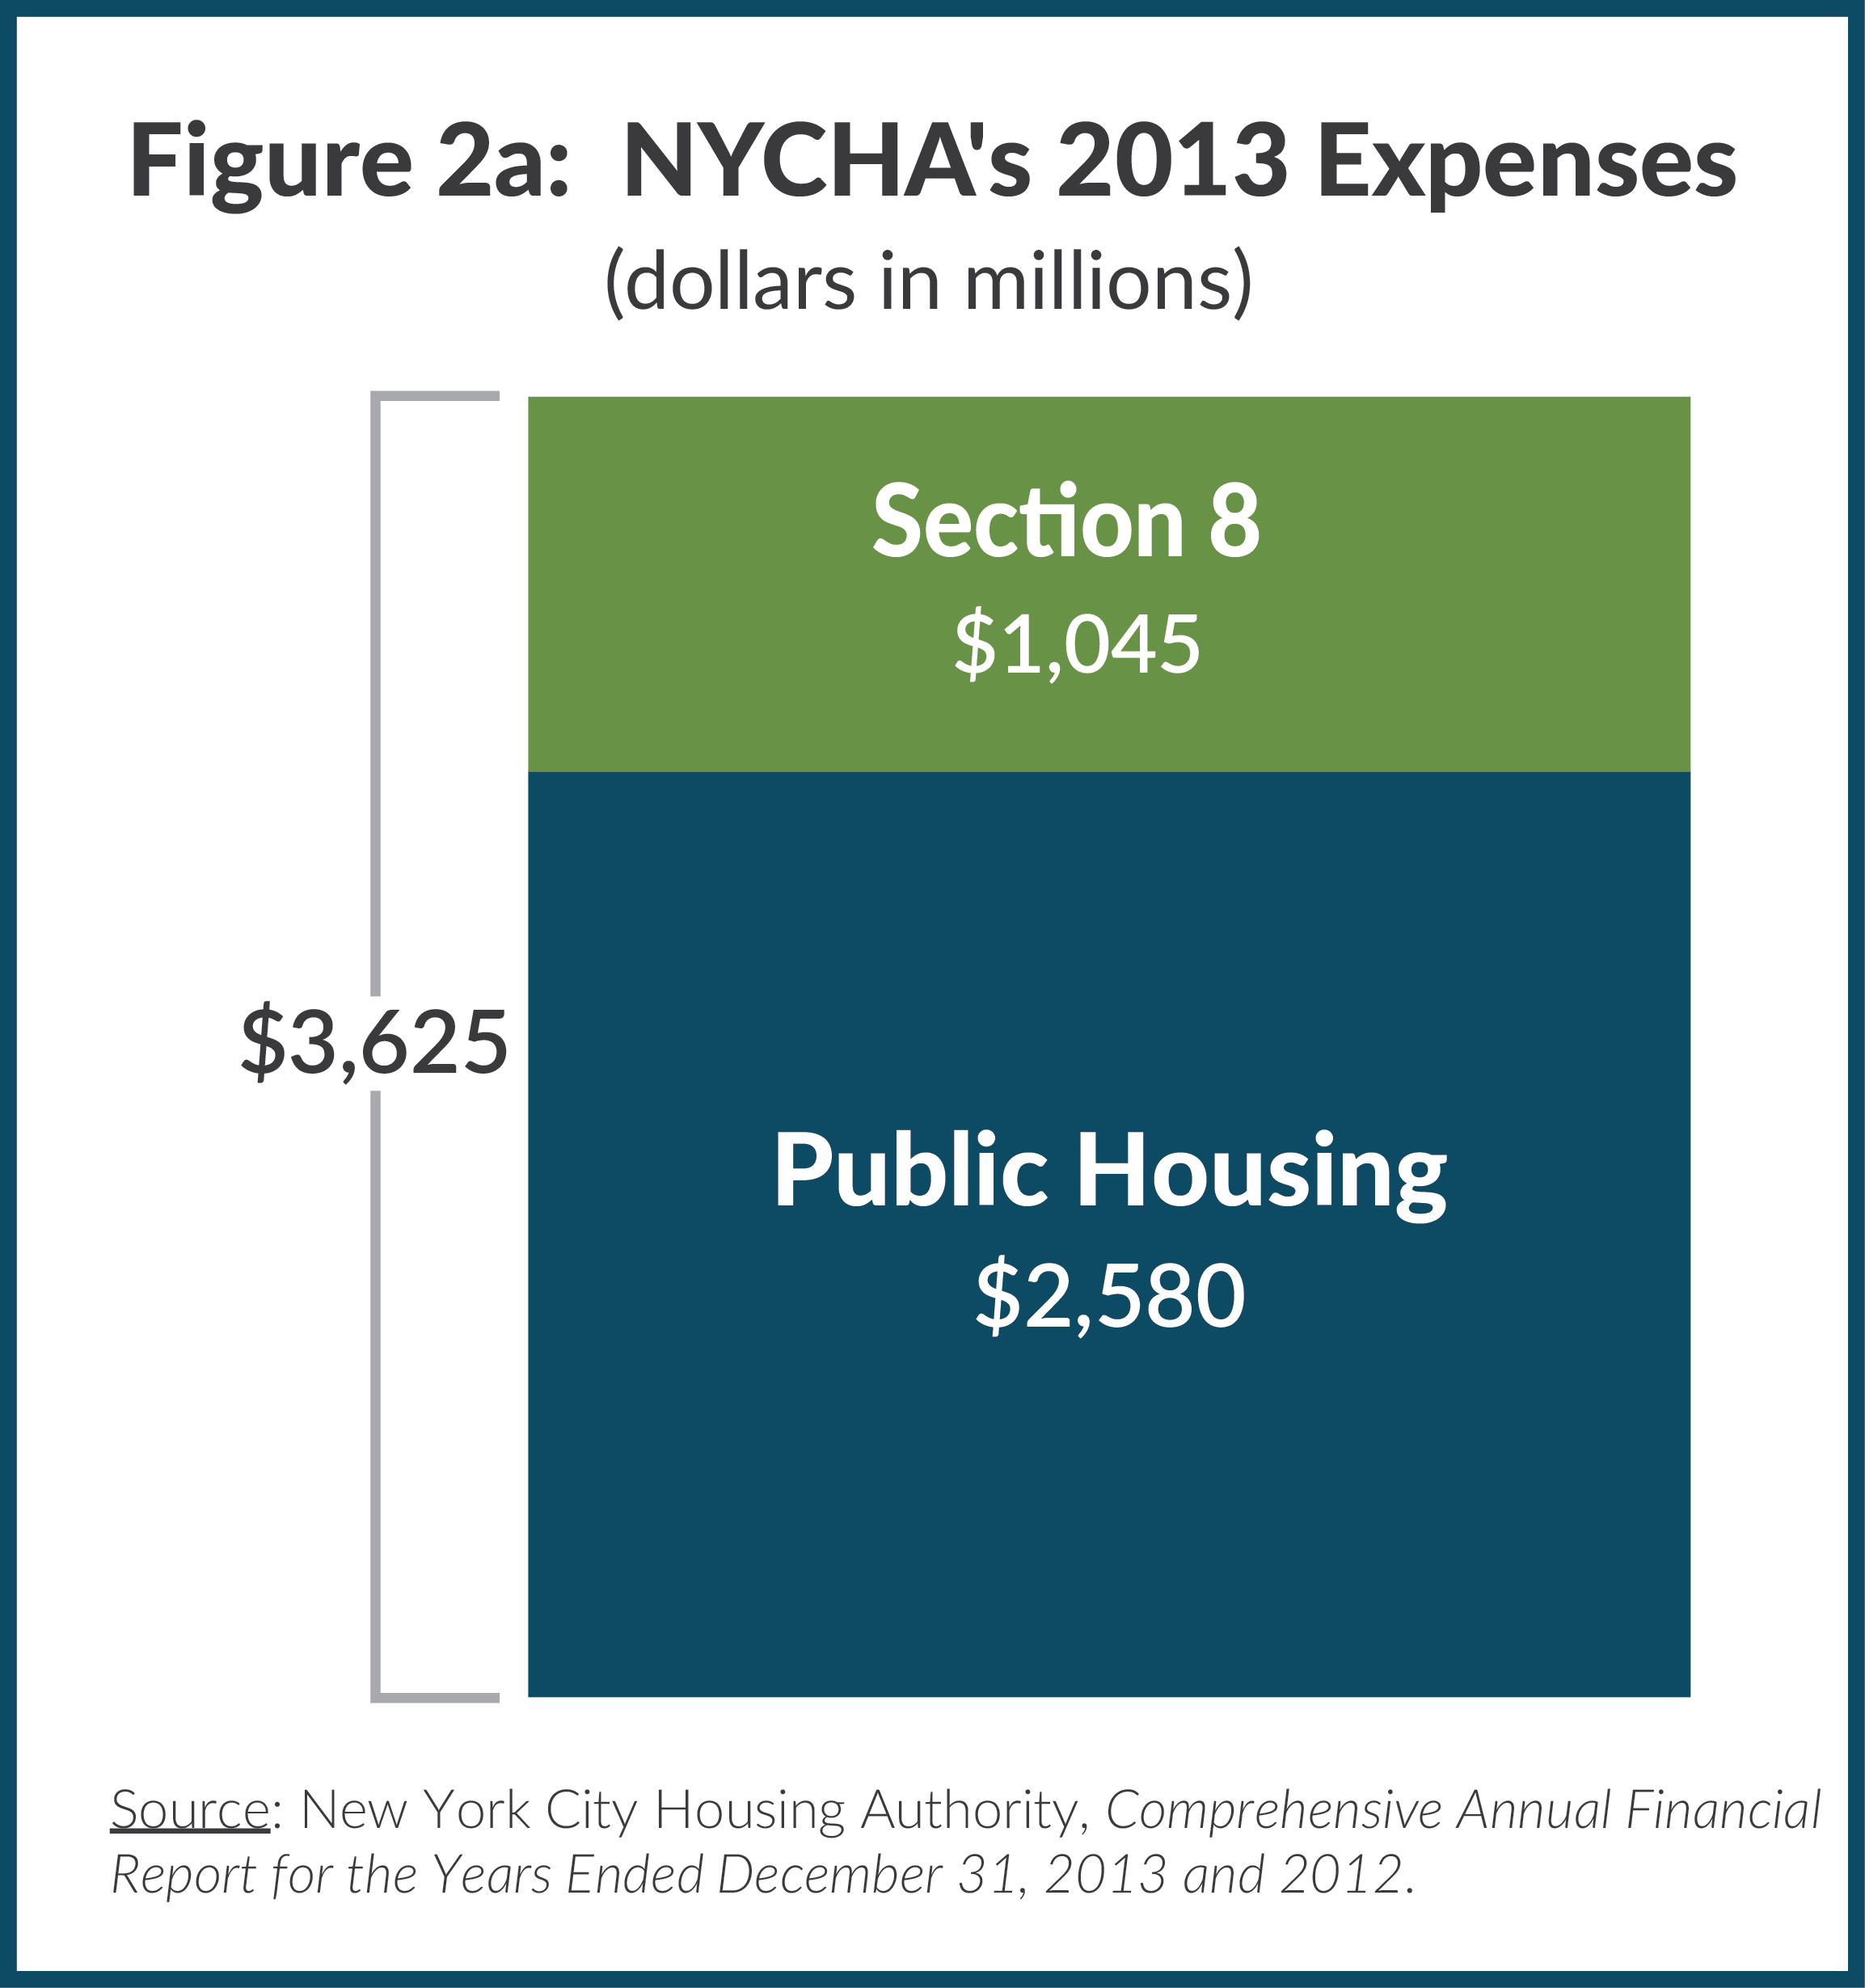 Figure 2a: NYCHA's 2013 Expenses